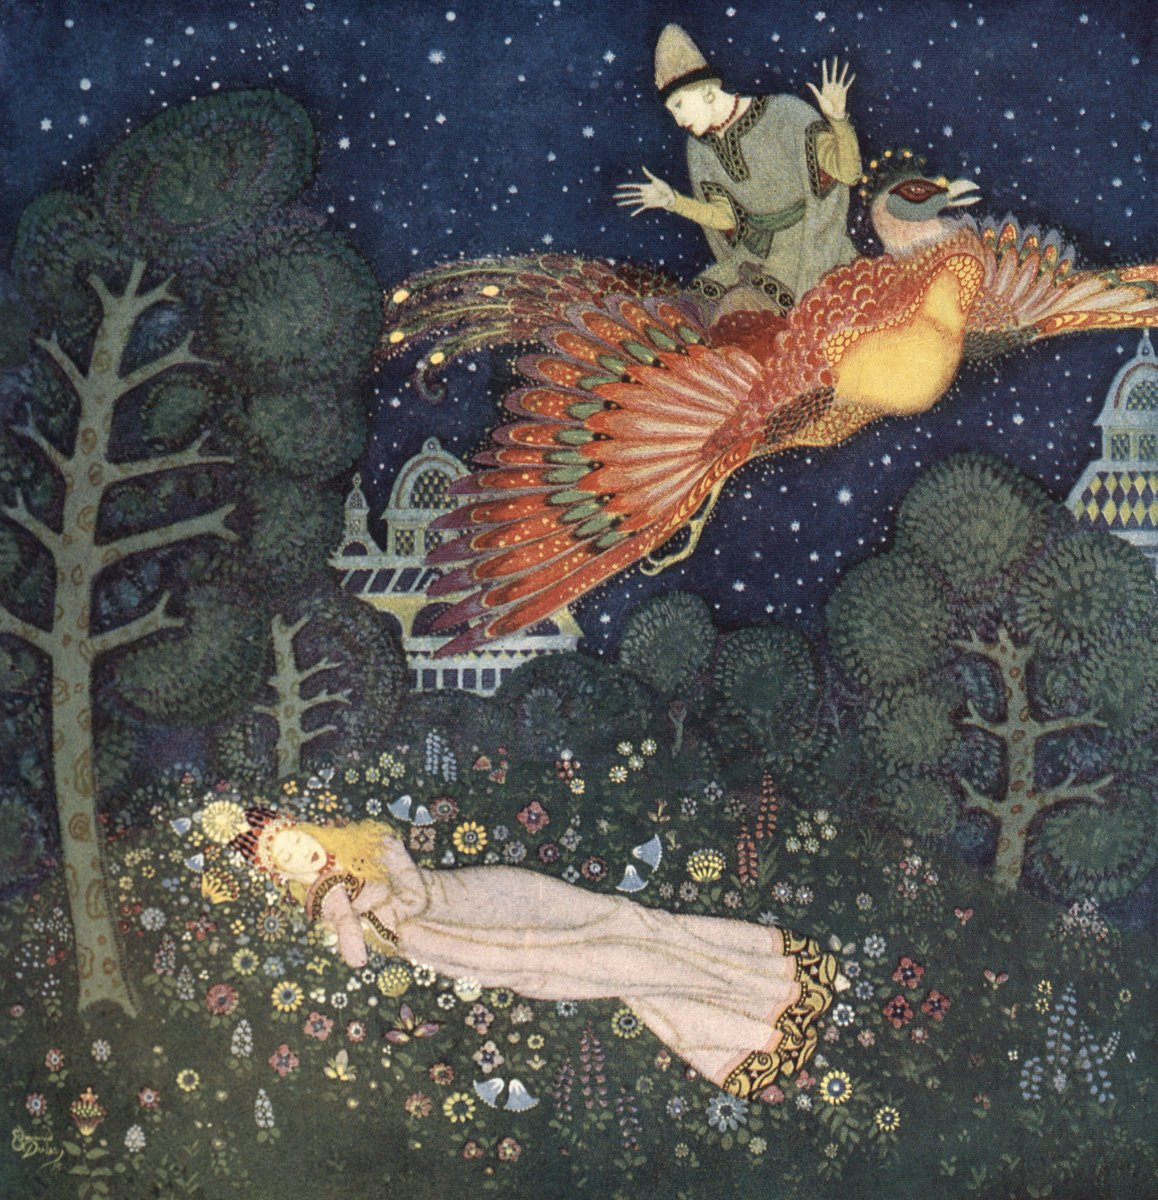 I adore this Edmund Dulac #illustration of the #Firebird of Russian #fairytales.  It is as if the picture itself possesses magic...  #FairyTaleTuesdaypic.twitter.com/sNeJEGSiqK